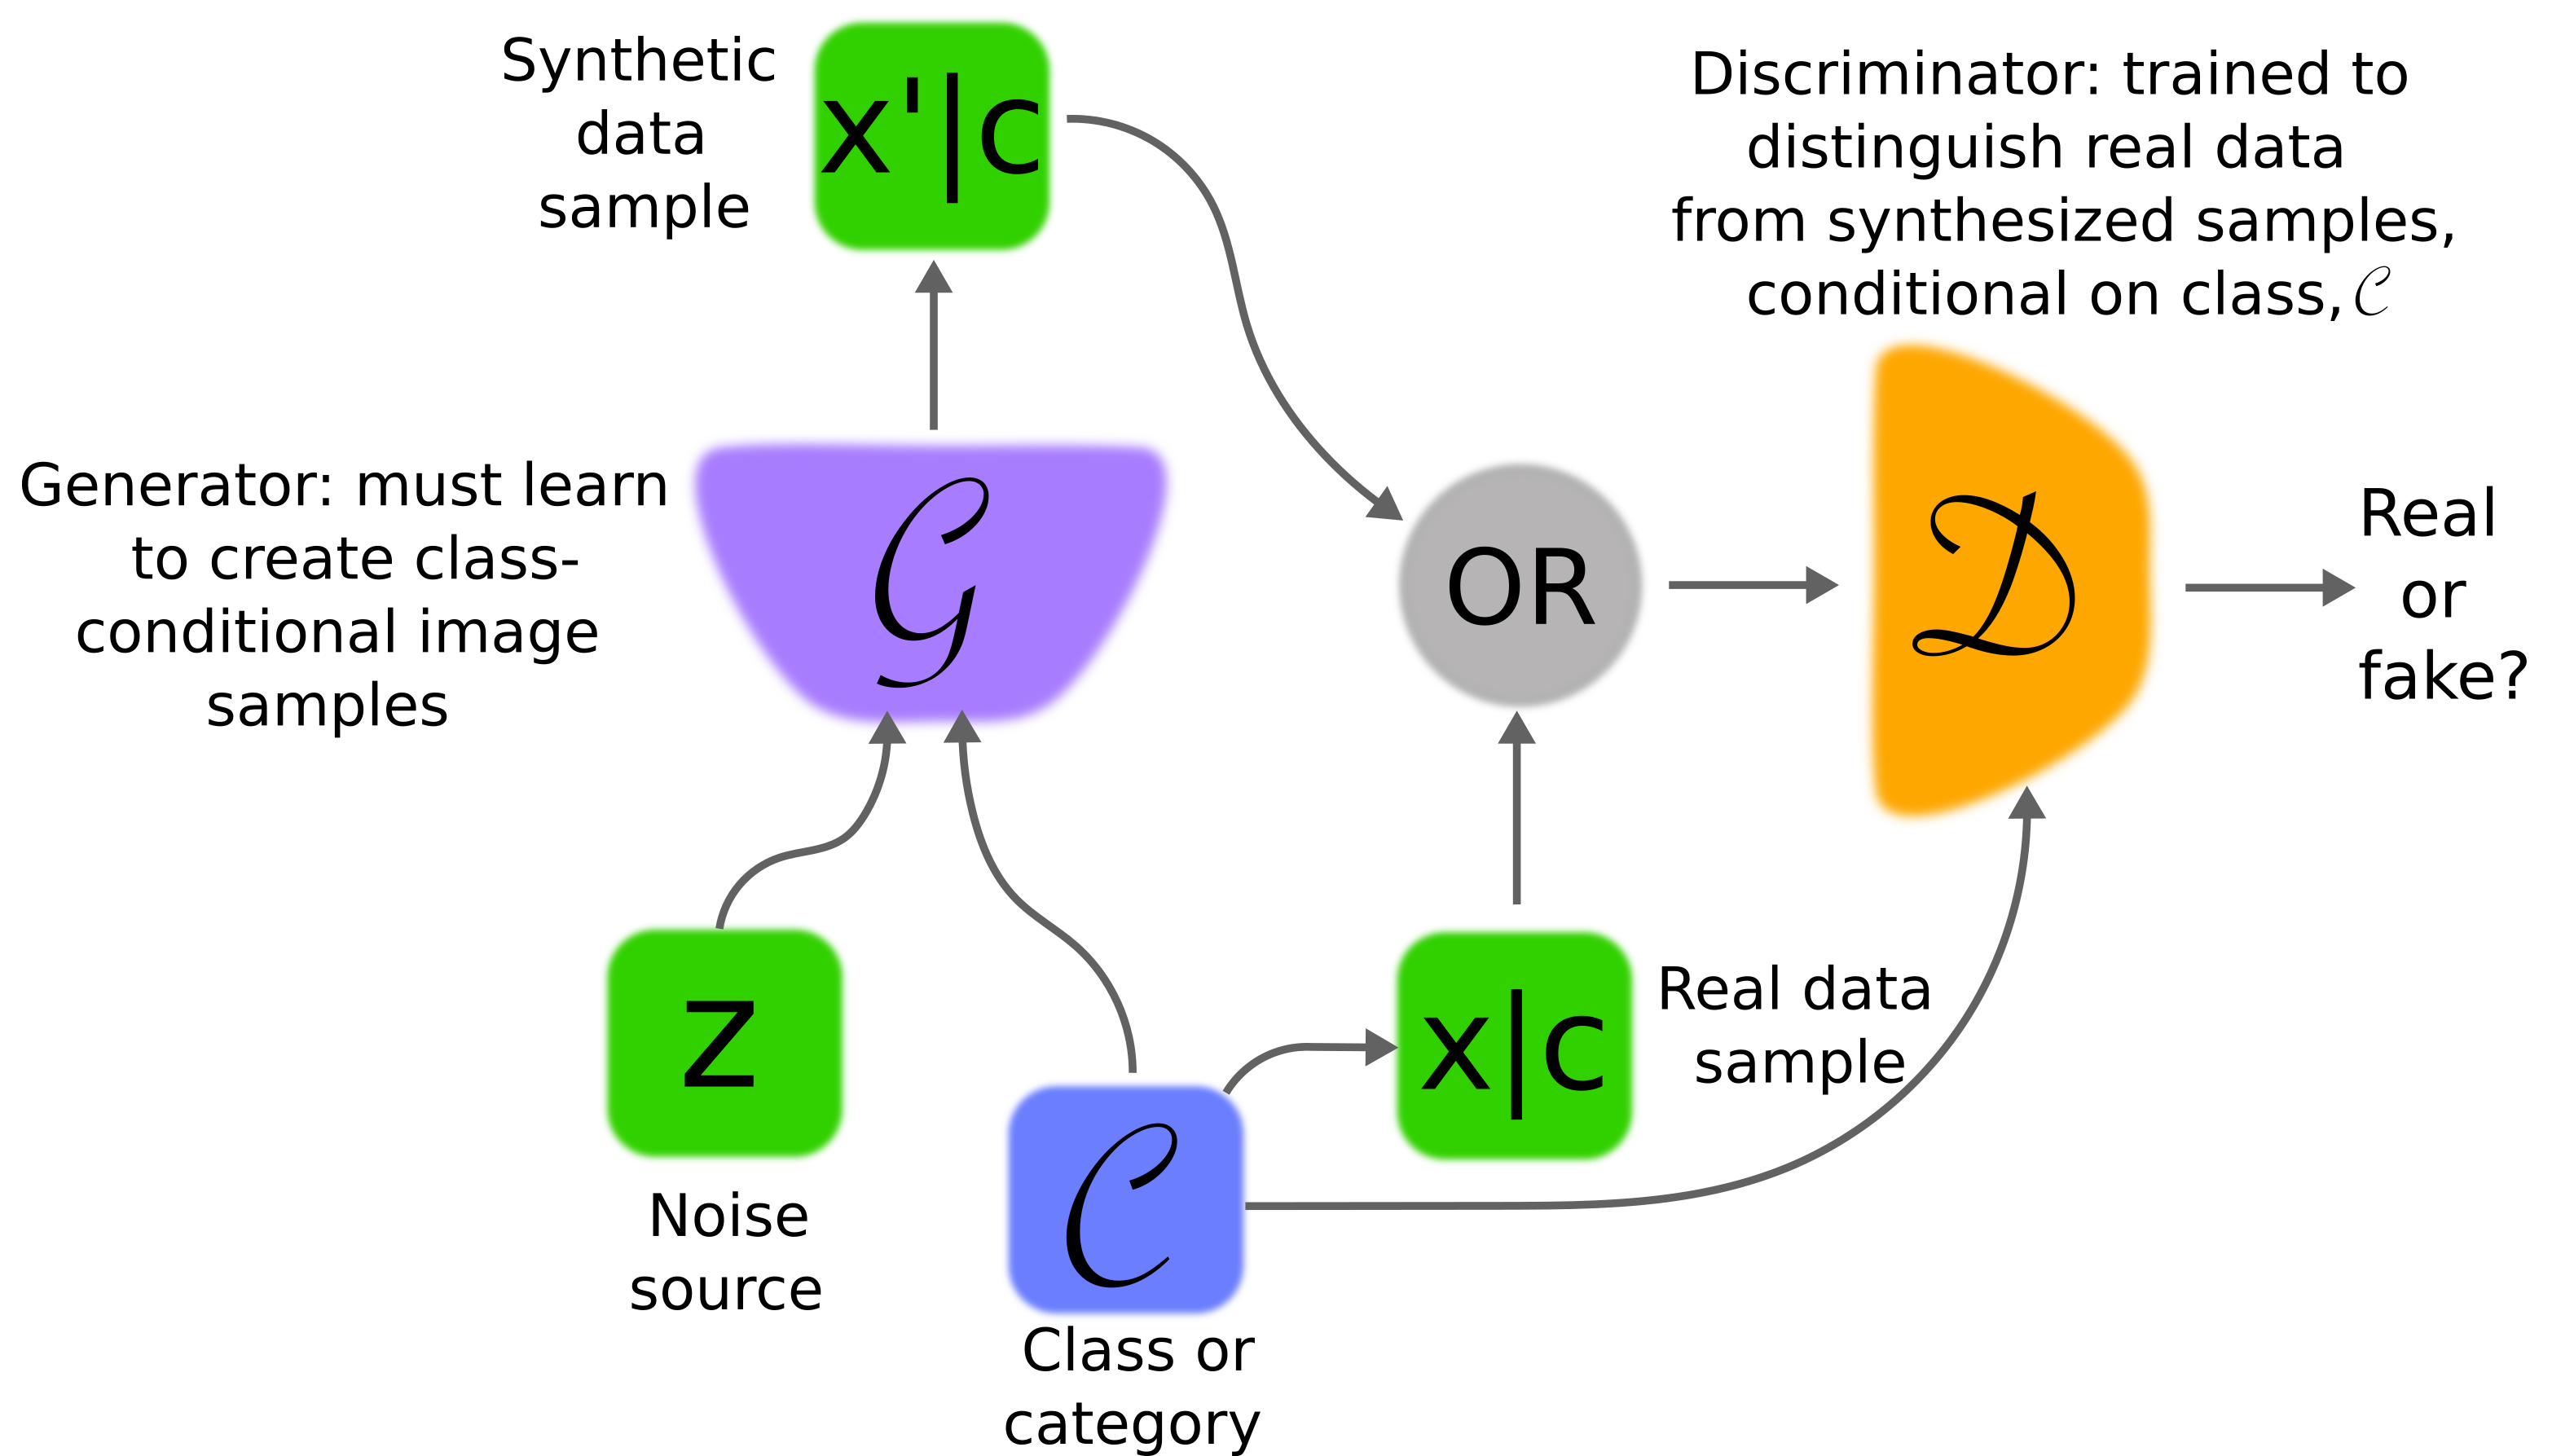 Left, the Conditional GAN, proposed by Mirza et al.